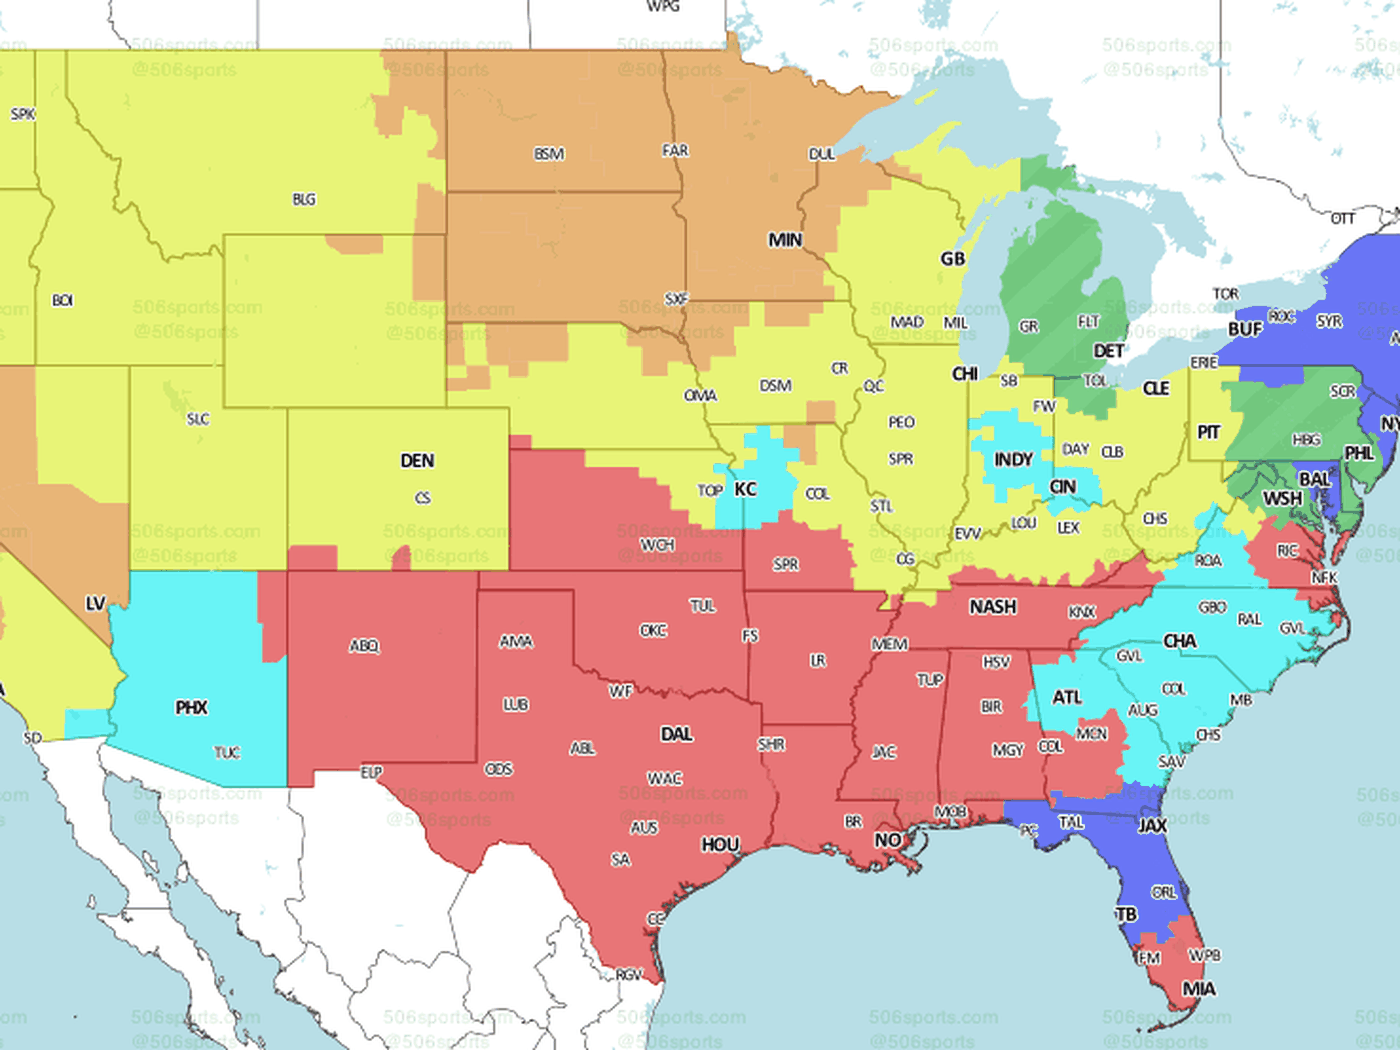 Denver Broncos at Green Bay Packers: TV broadcast map for ... on